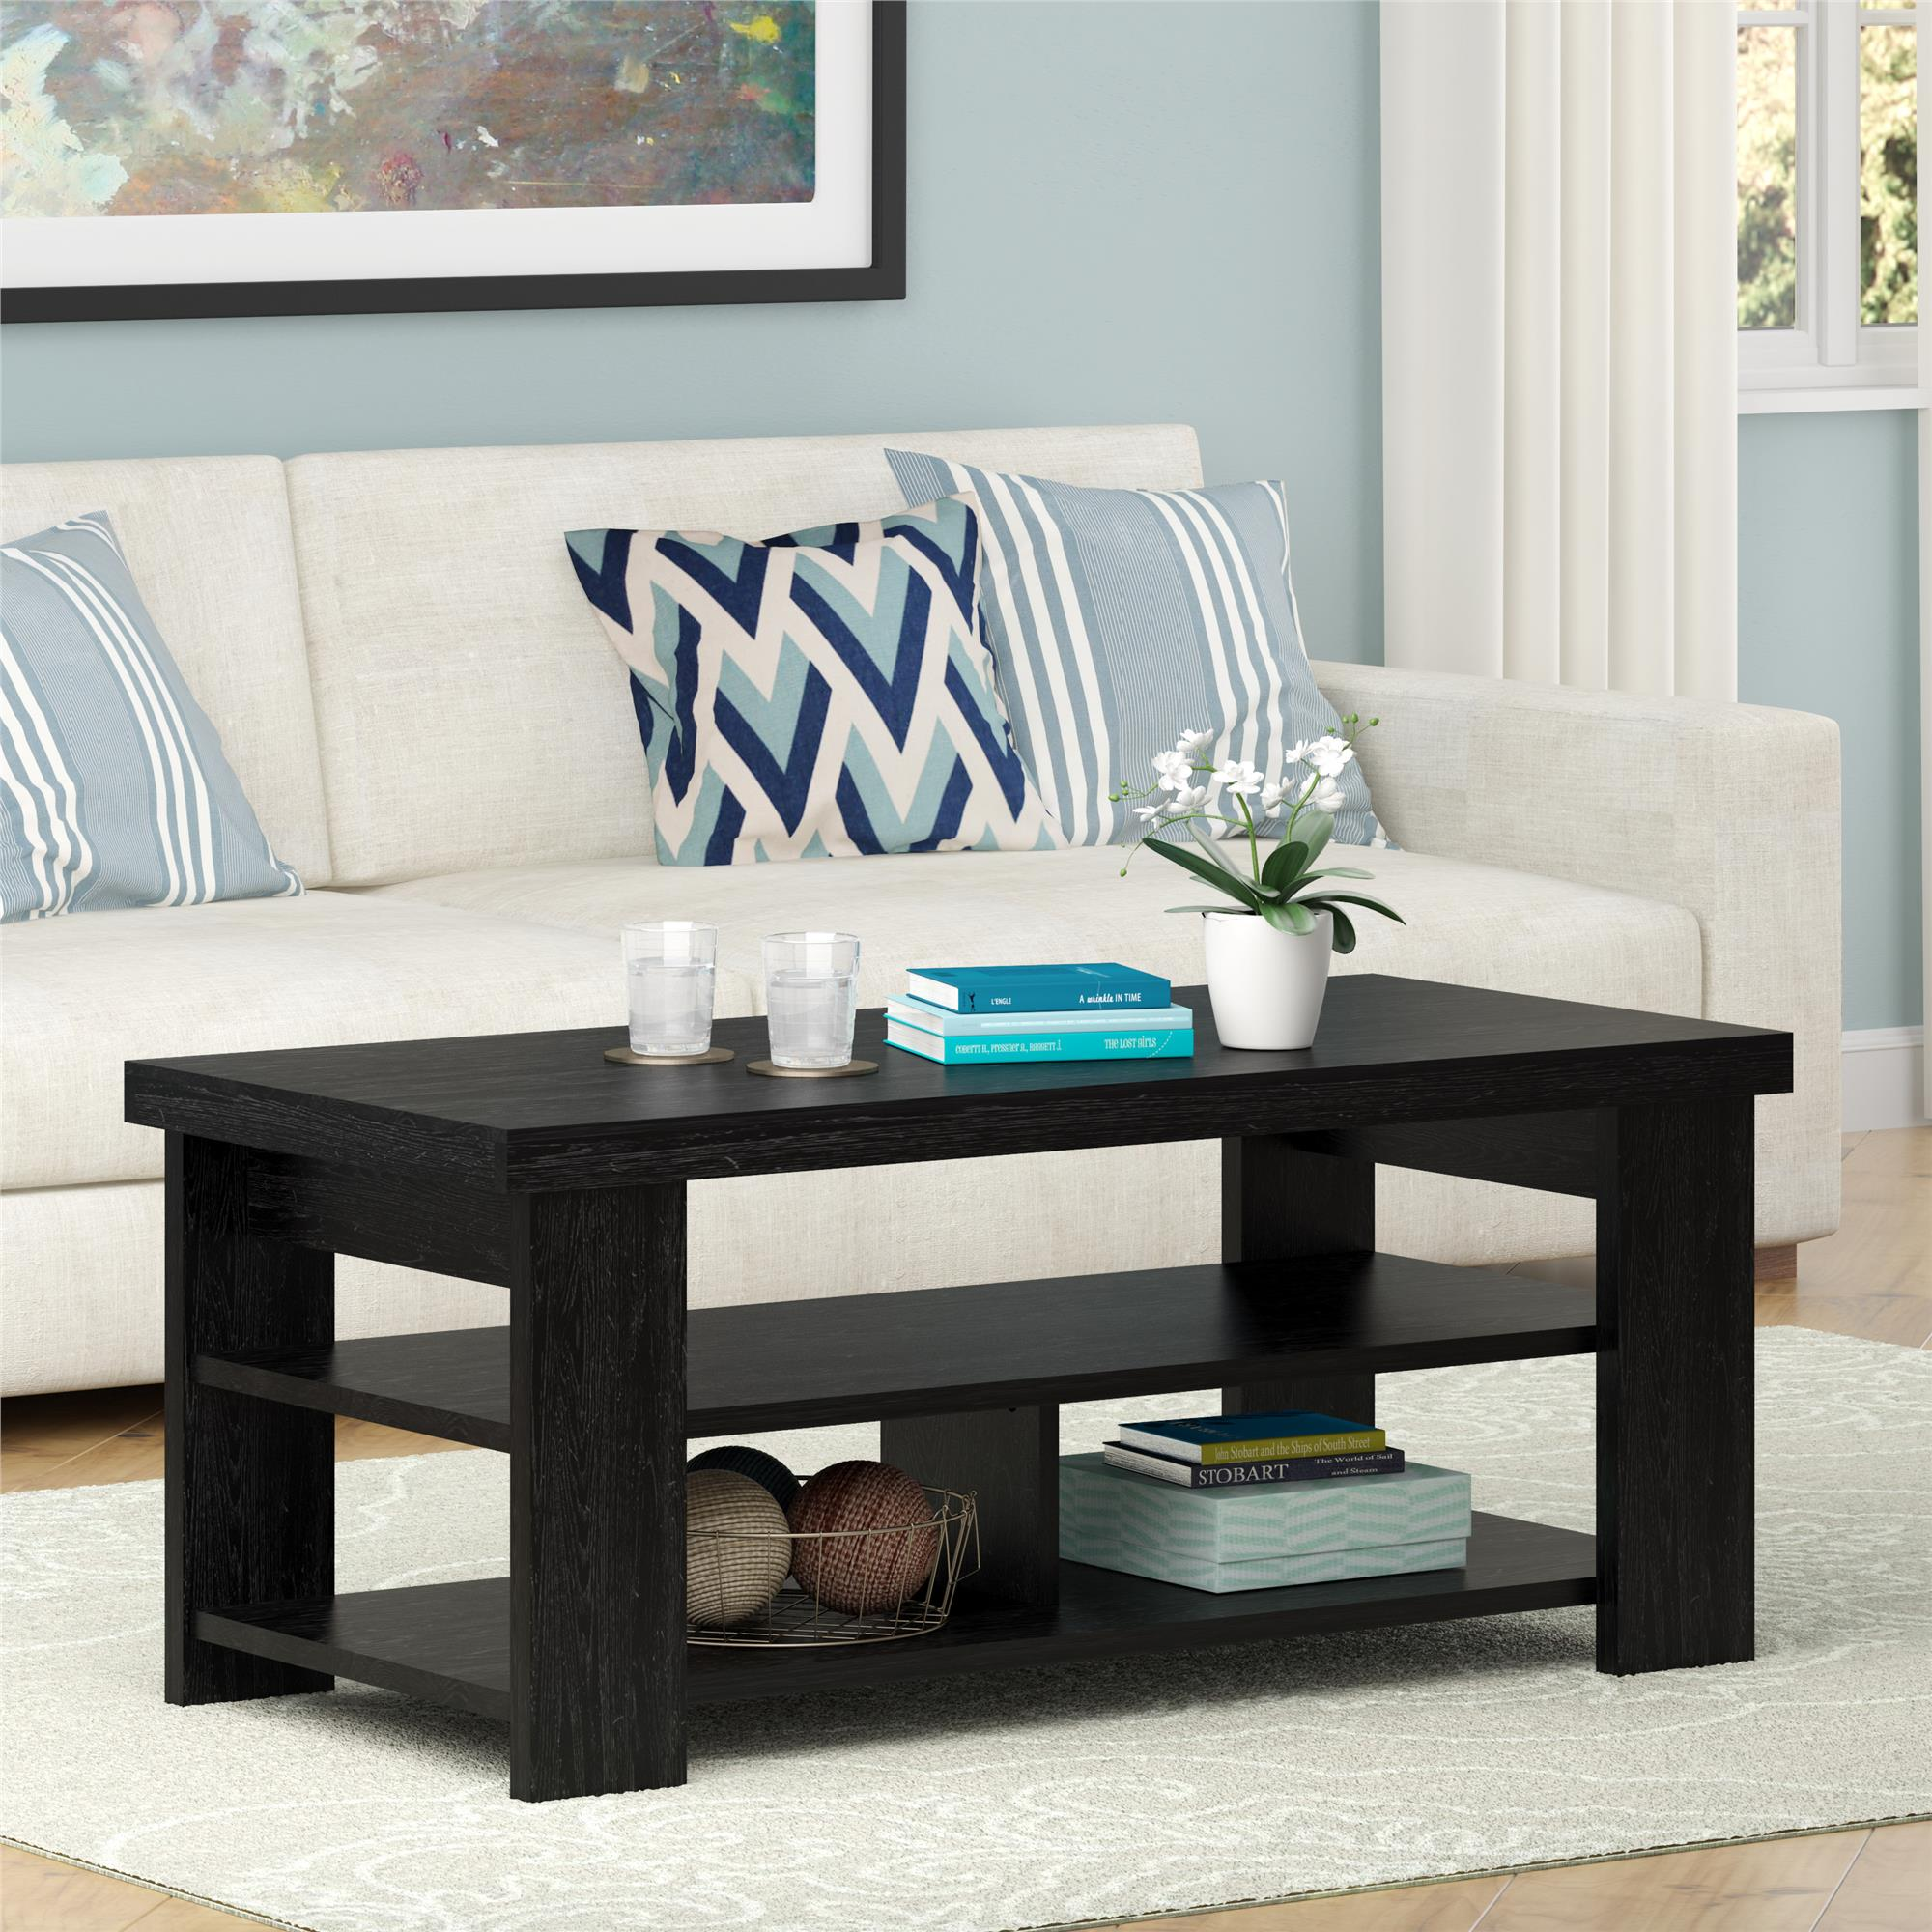 Ameriwood Home Jensen Coffee Table, Multiple Colors by Ameriwood Industries